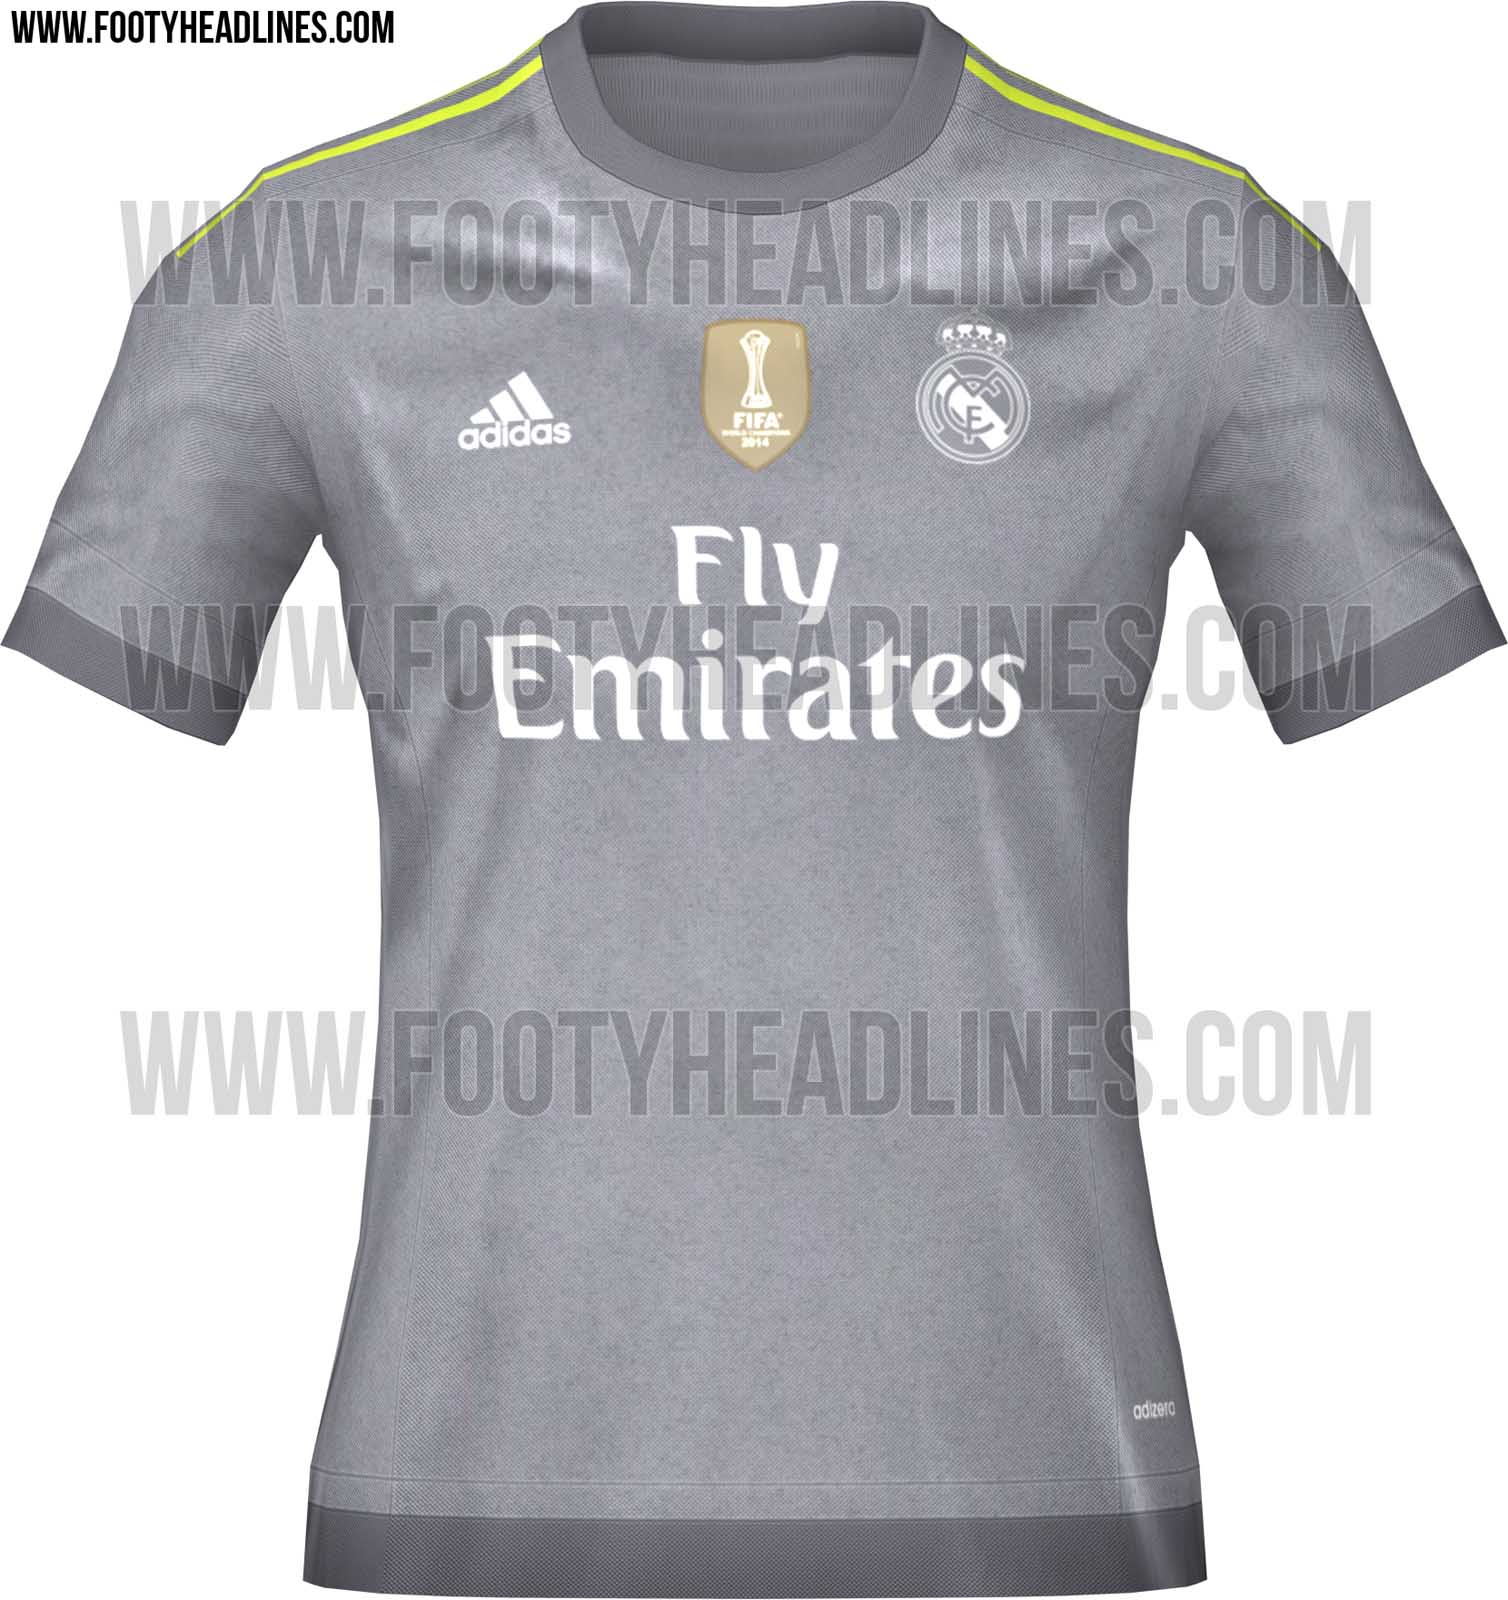 89eaacbee6b The New Real Madrid Jerseys For Next Season Are Here And They re ...